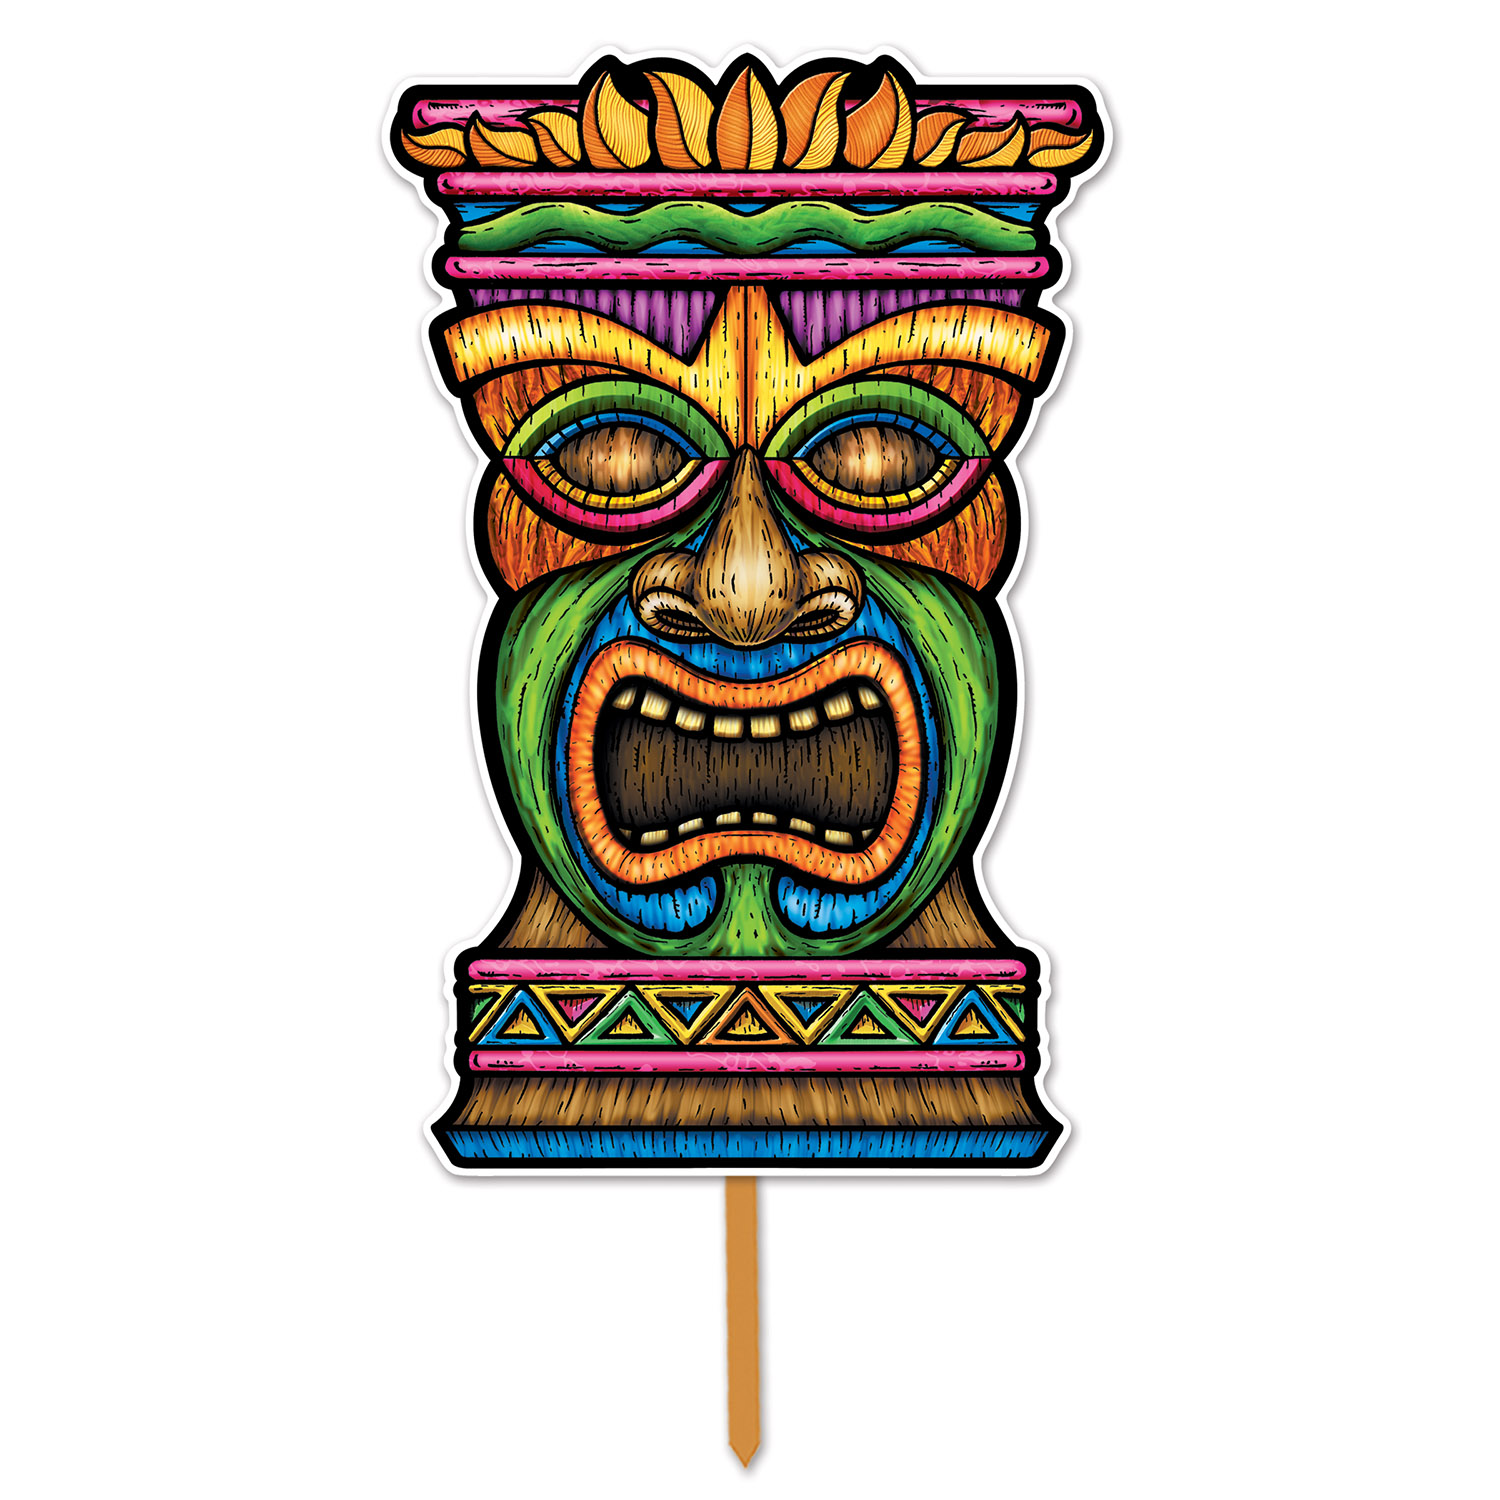 3-D Plastic Tiki Yard Sign (Pack of 6) 3-D Plastic Tiki Yard Sign, decoration, luau, new years eve, wholesale, inexpensive, bulk, outside